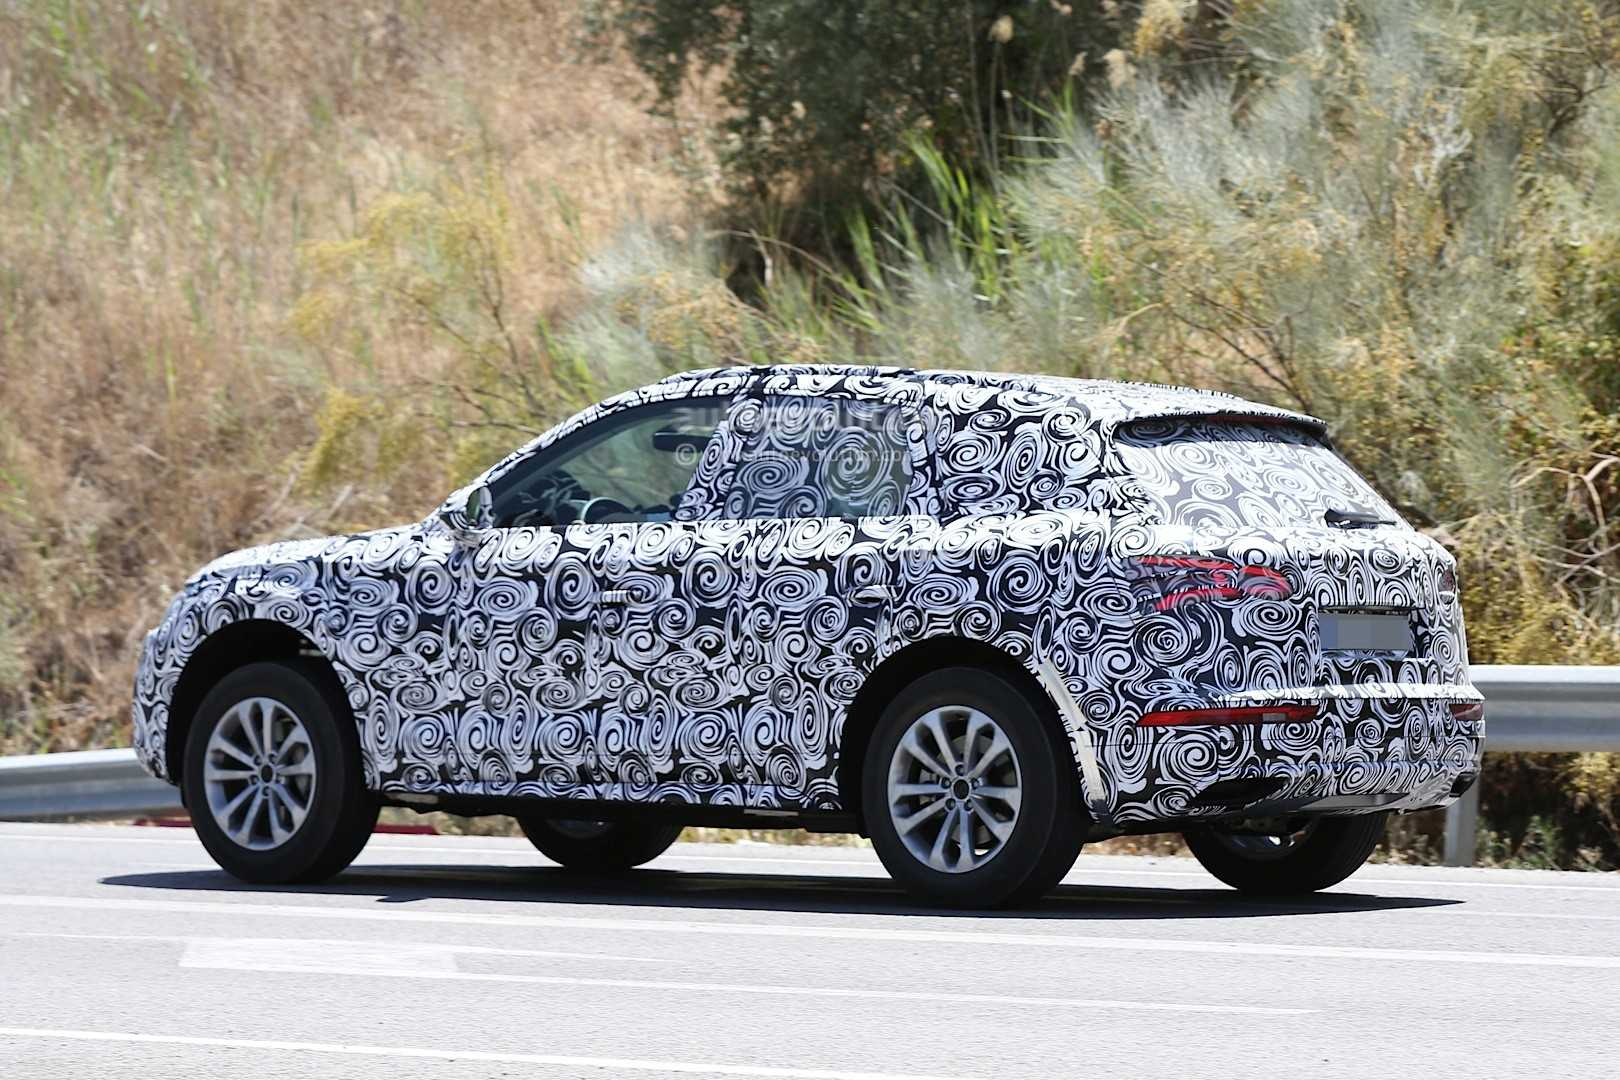 Spy Shots of 2017 Audi Q5 without Camouflage Emerge Online